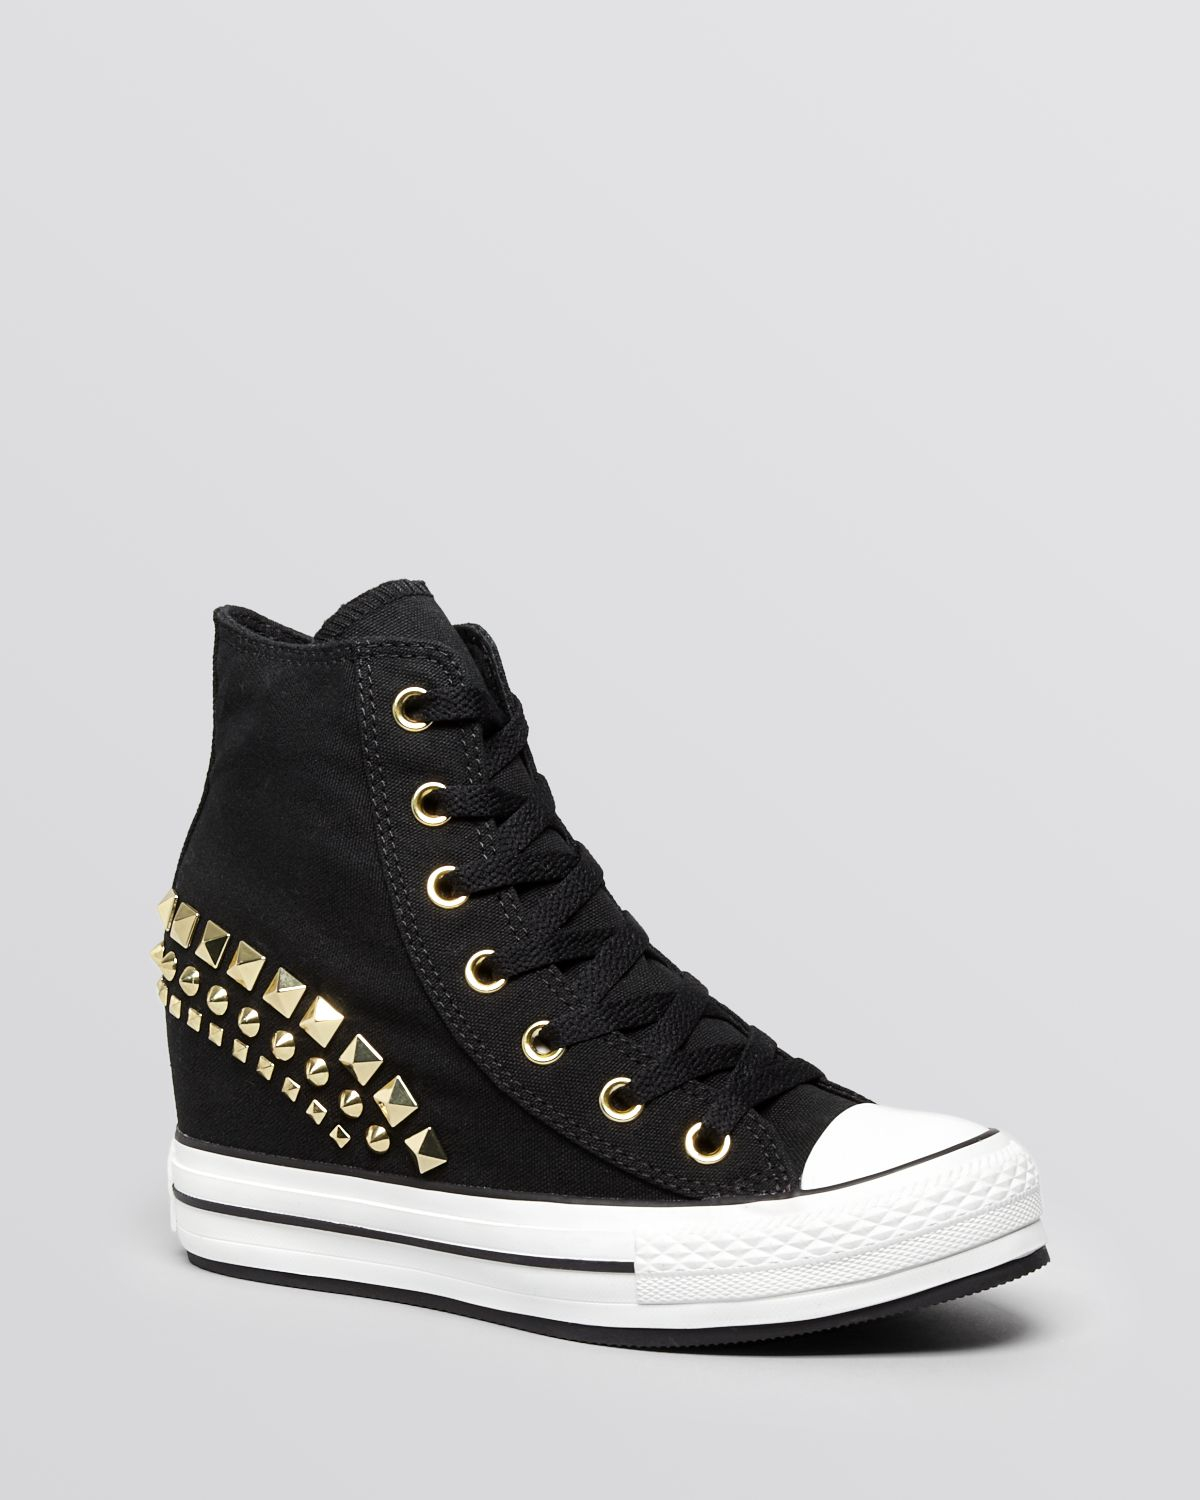 converse lace up high top wedge sneakers all platform